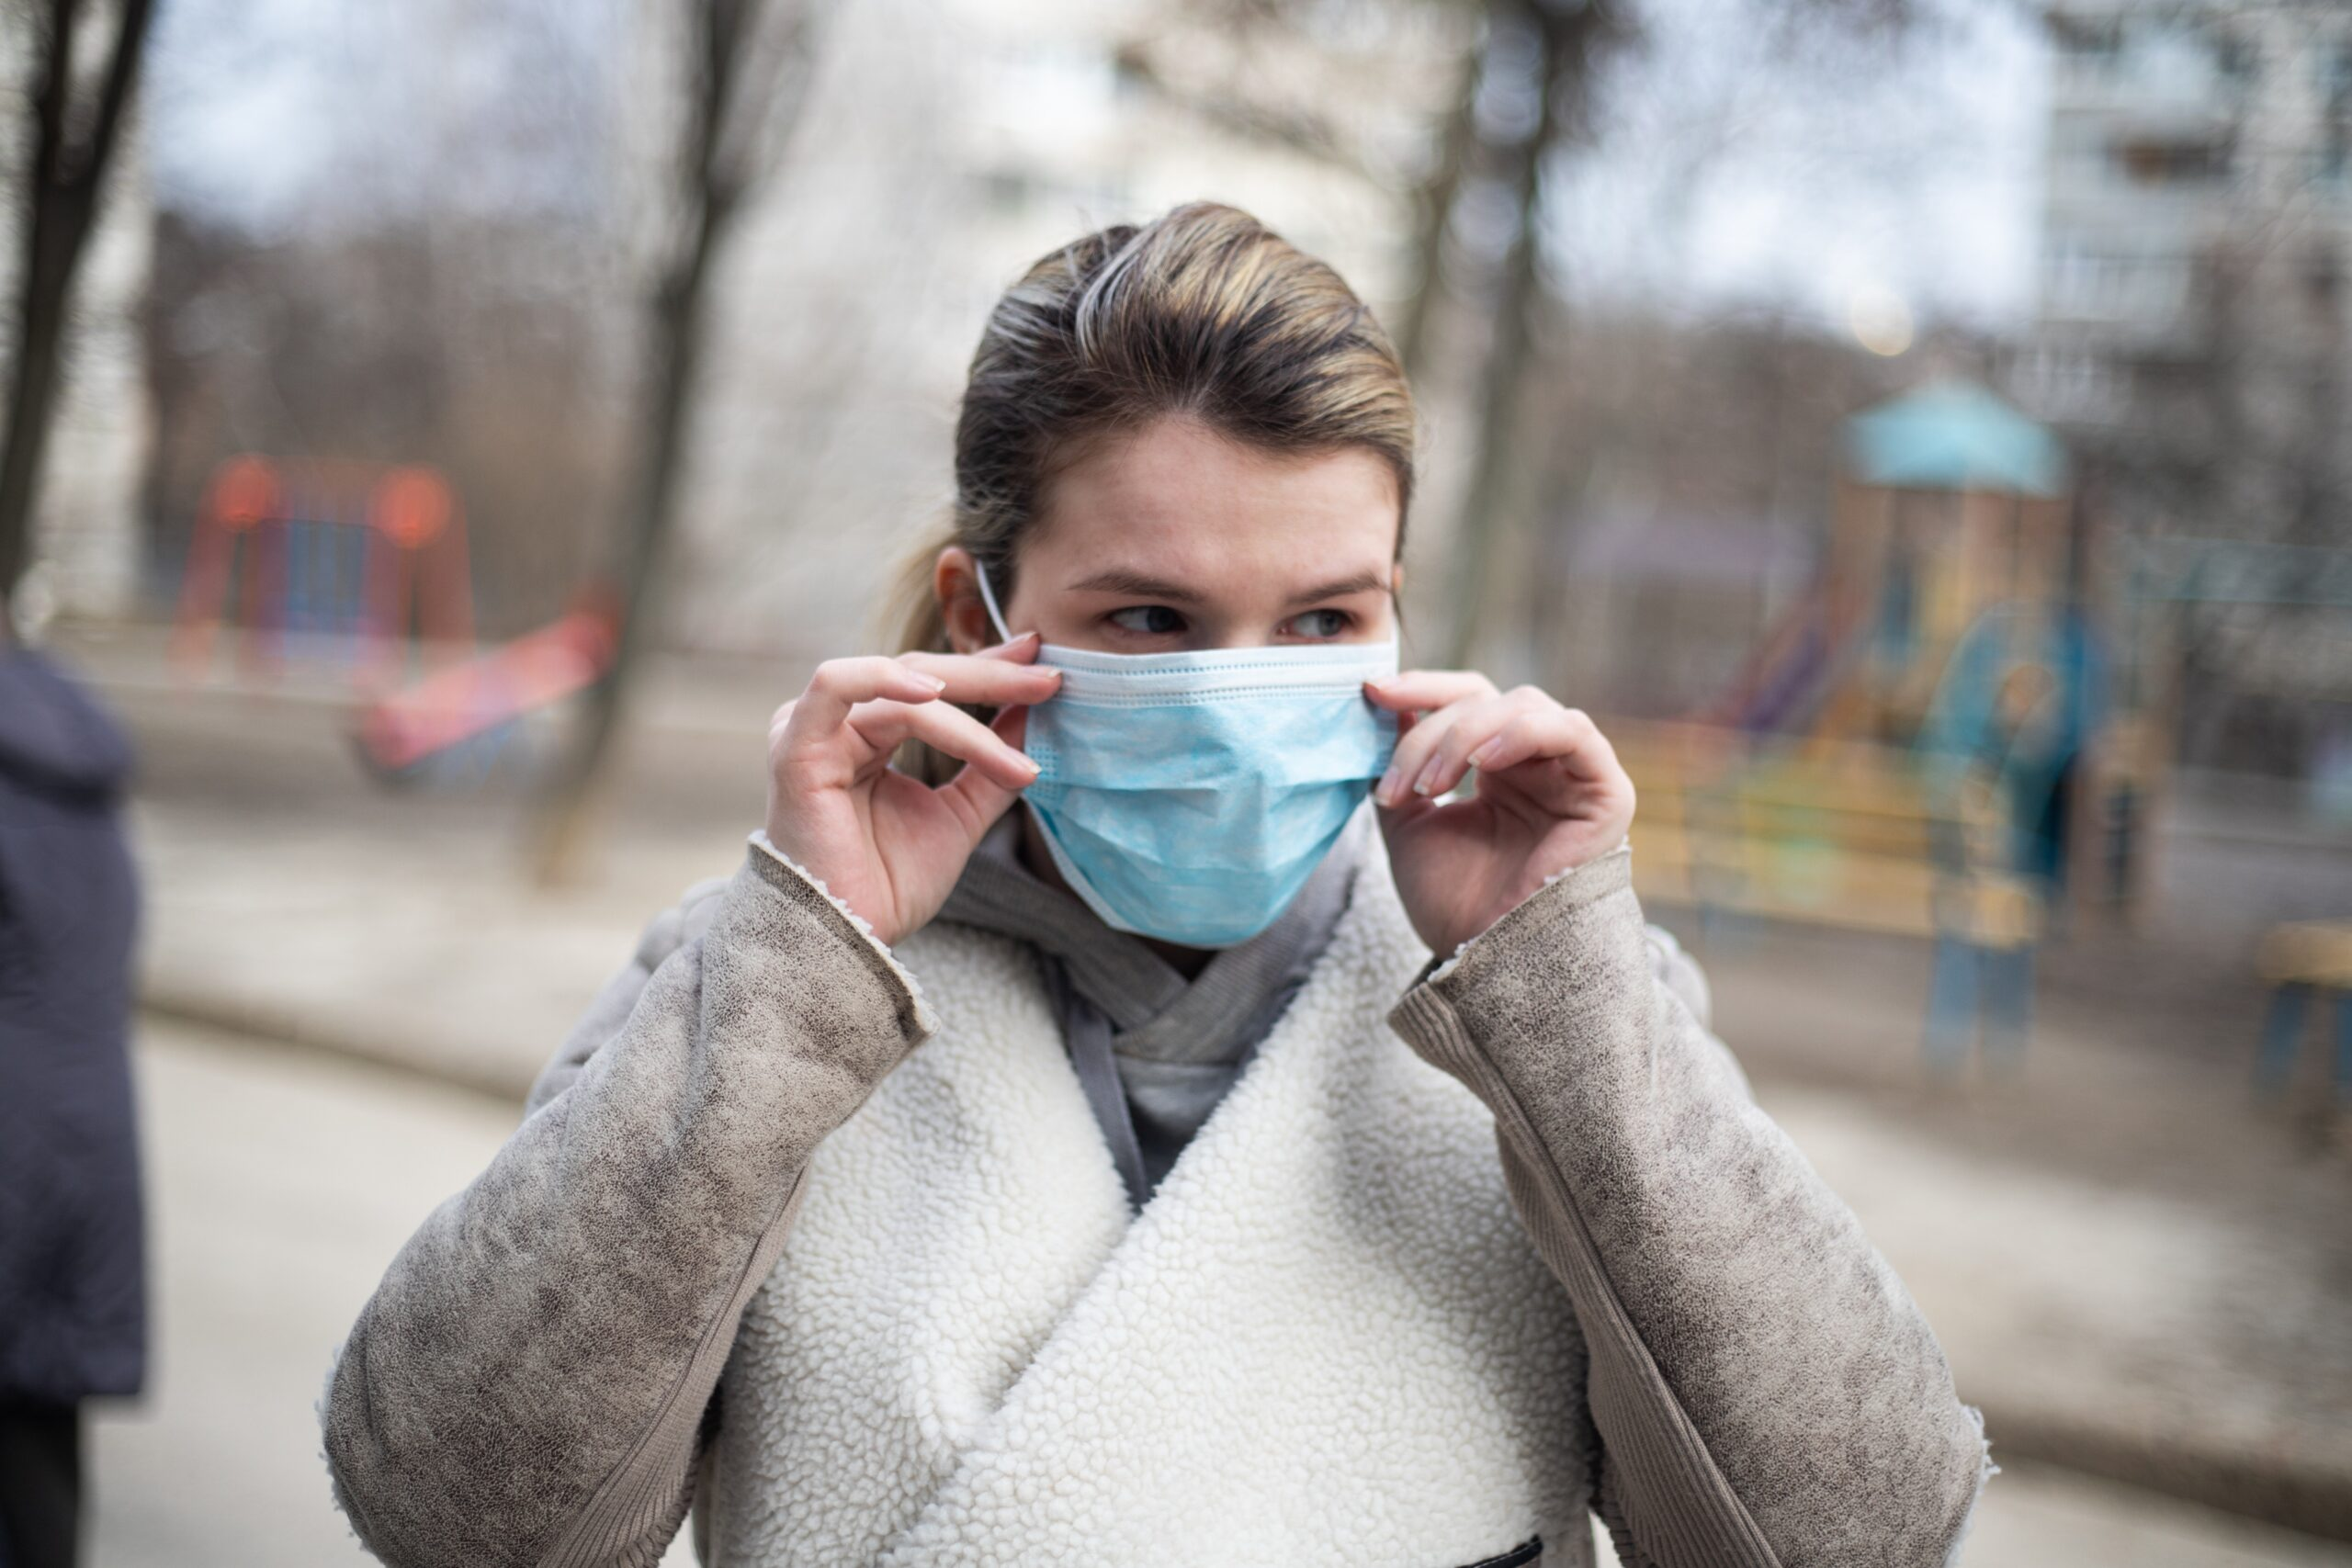 A young woman is fixing a surgical mask on her face while outsite